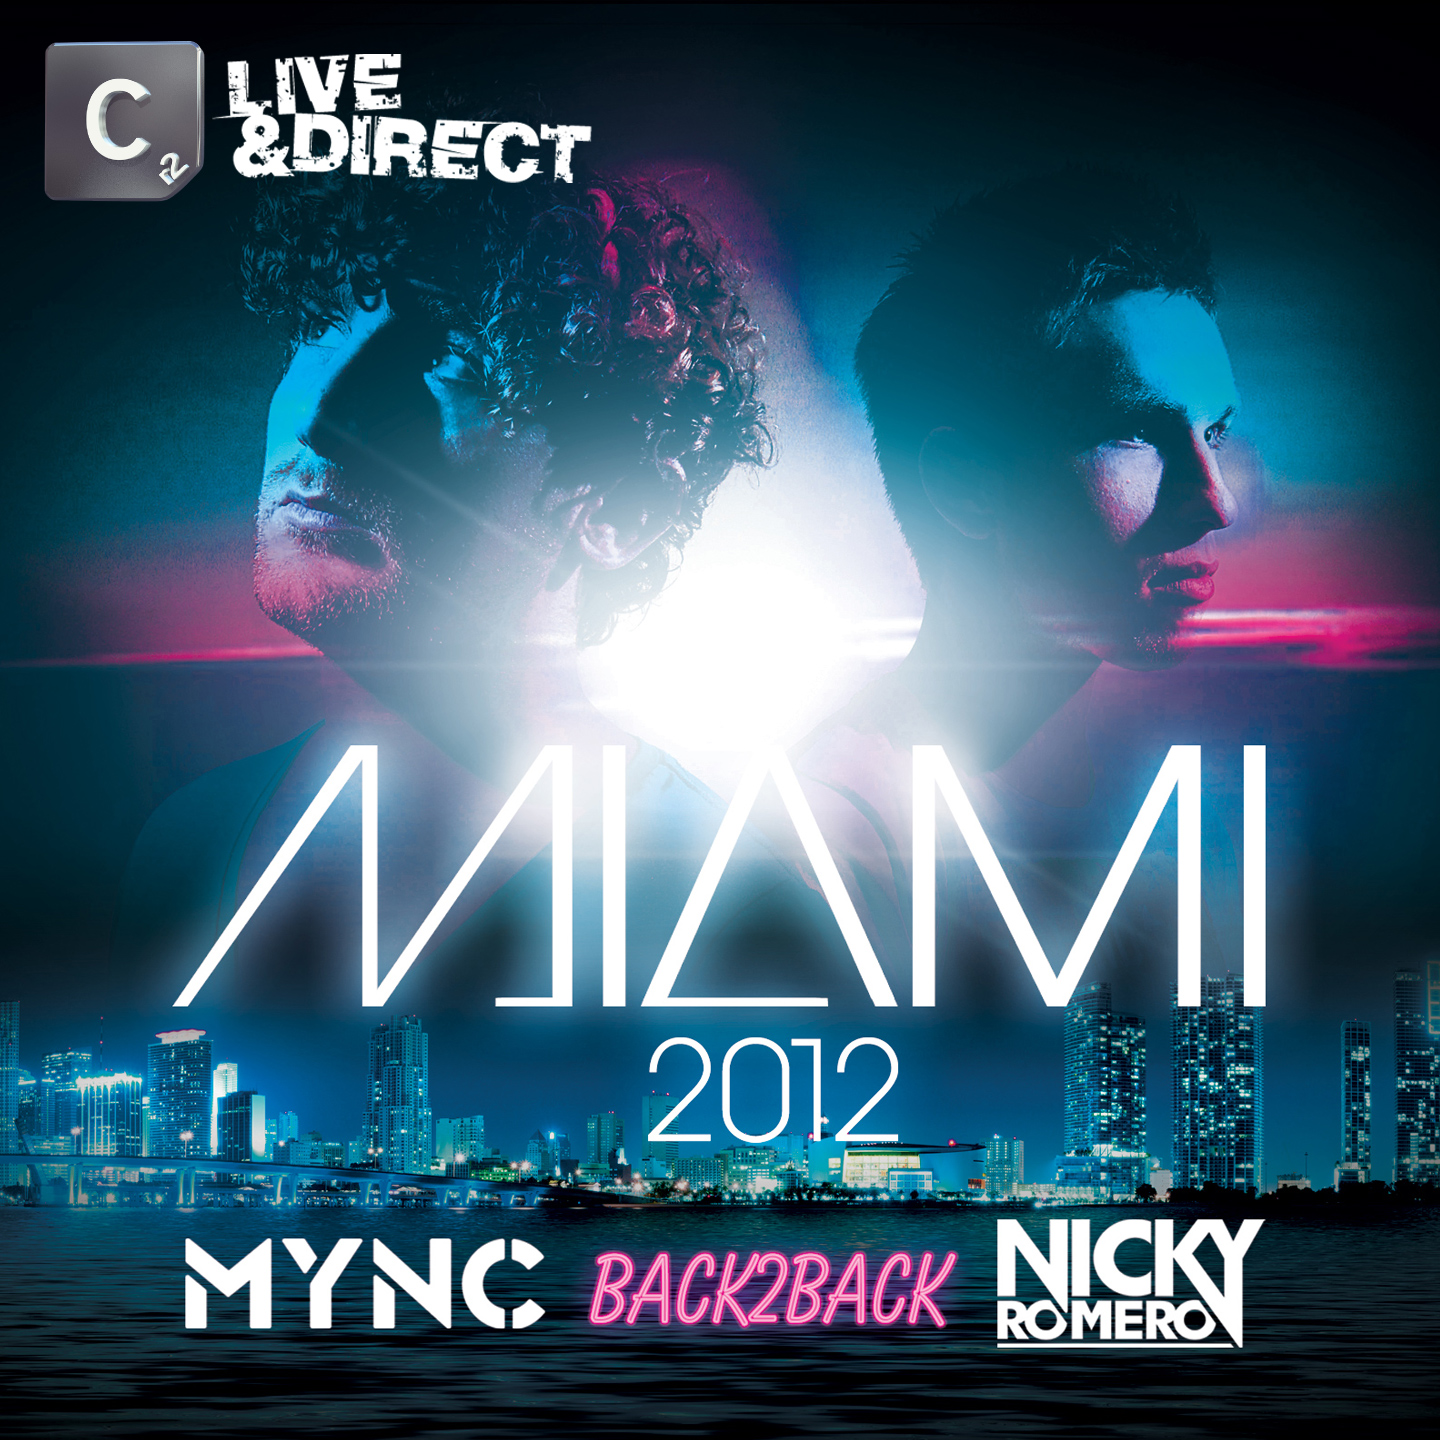  MYNC &amp; Nicky Romero to release &quot;Miami 2012&quot; compilation on Cr2 Records